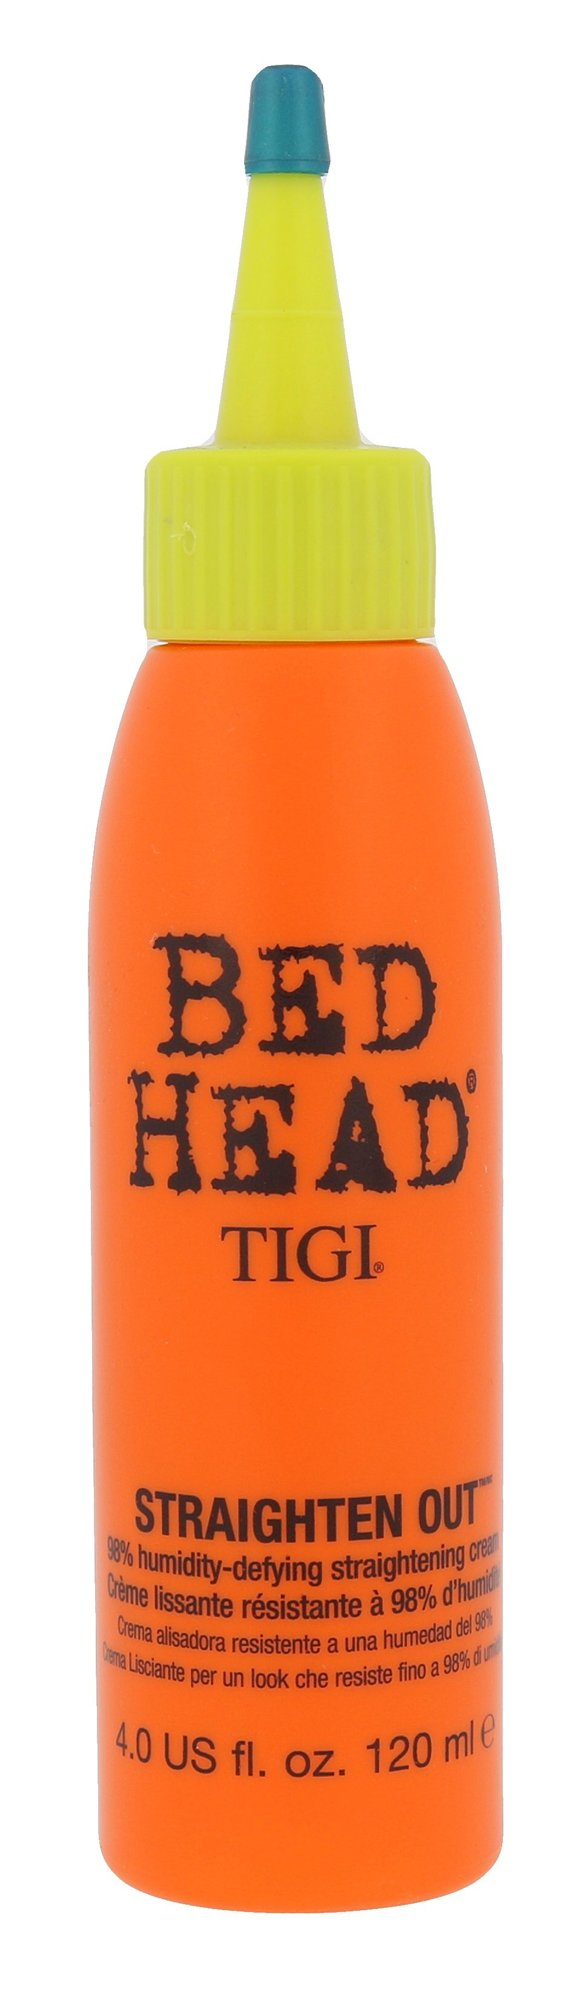 Tigi Bed Head Straighten Out Cosmetic 120ml